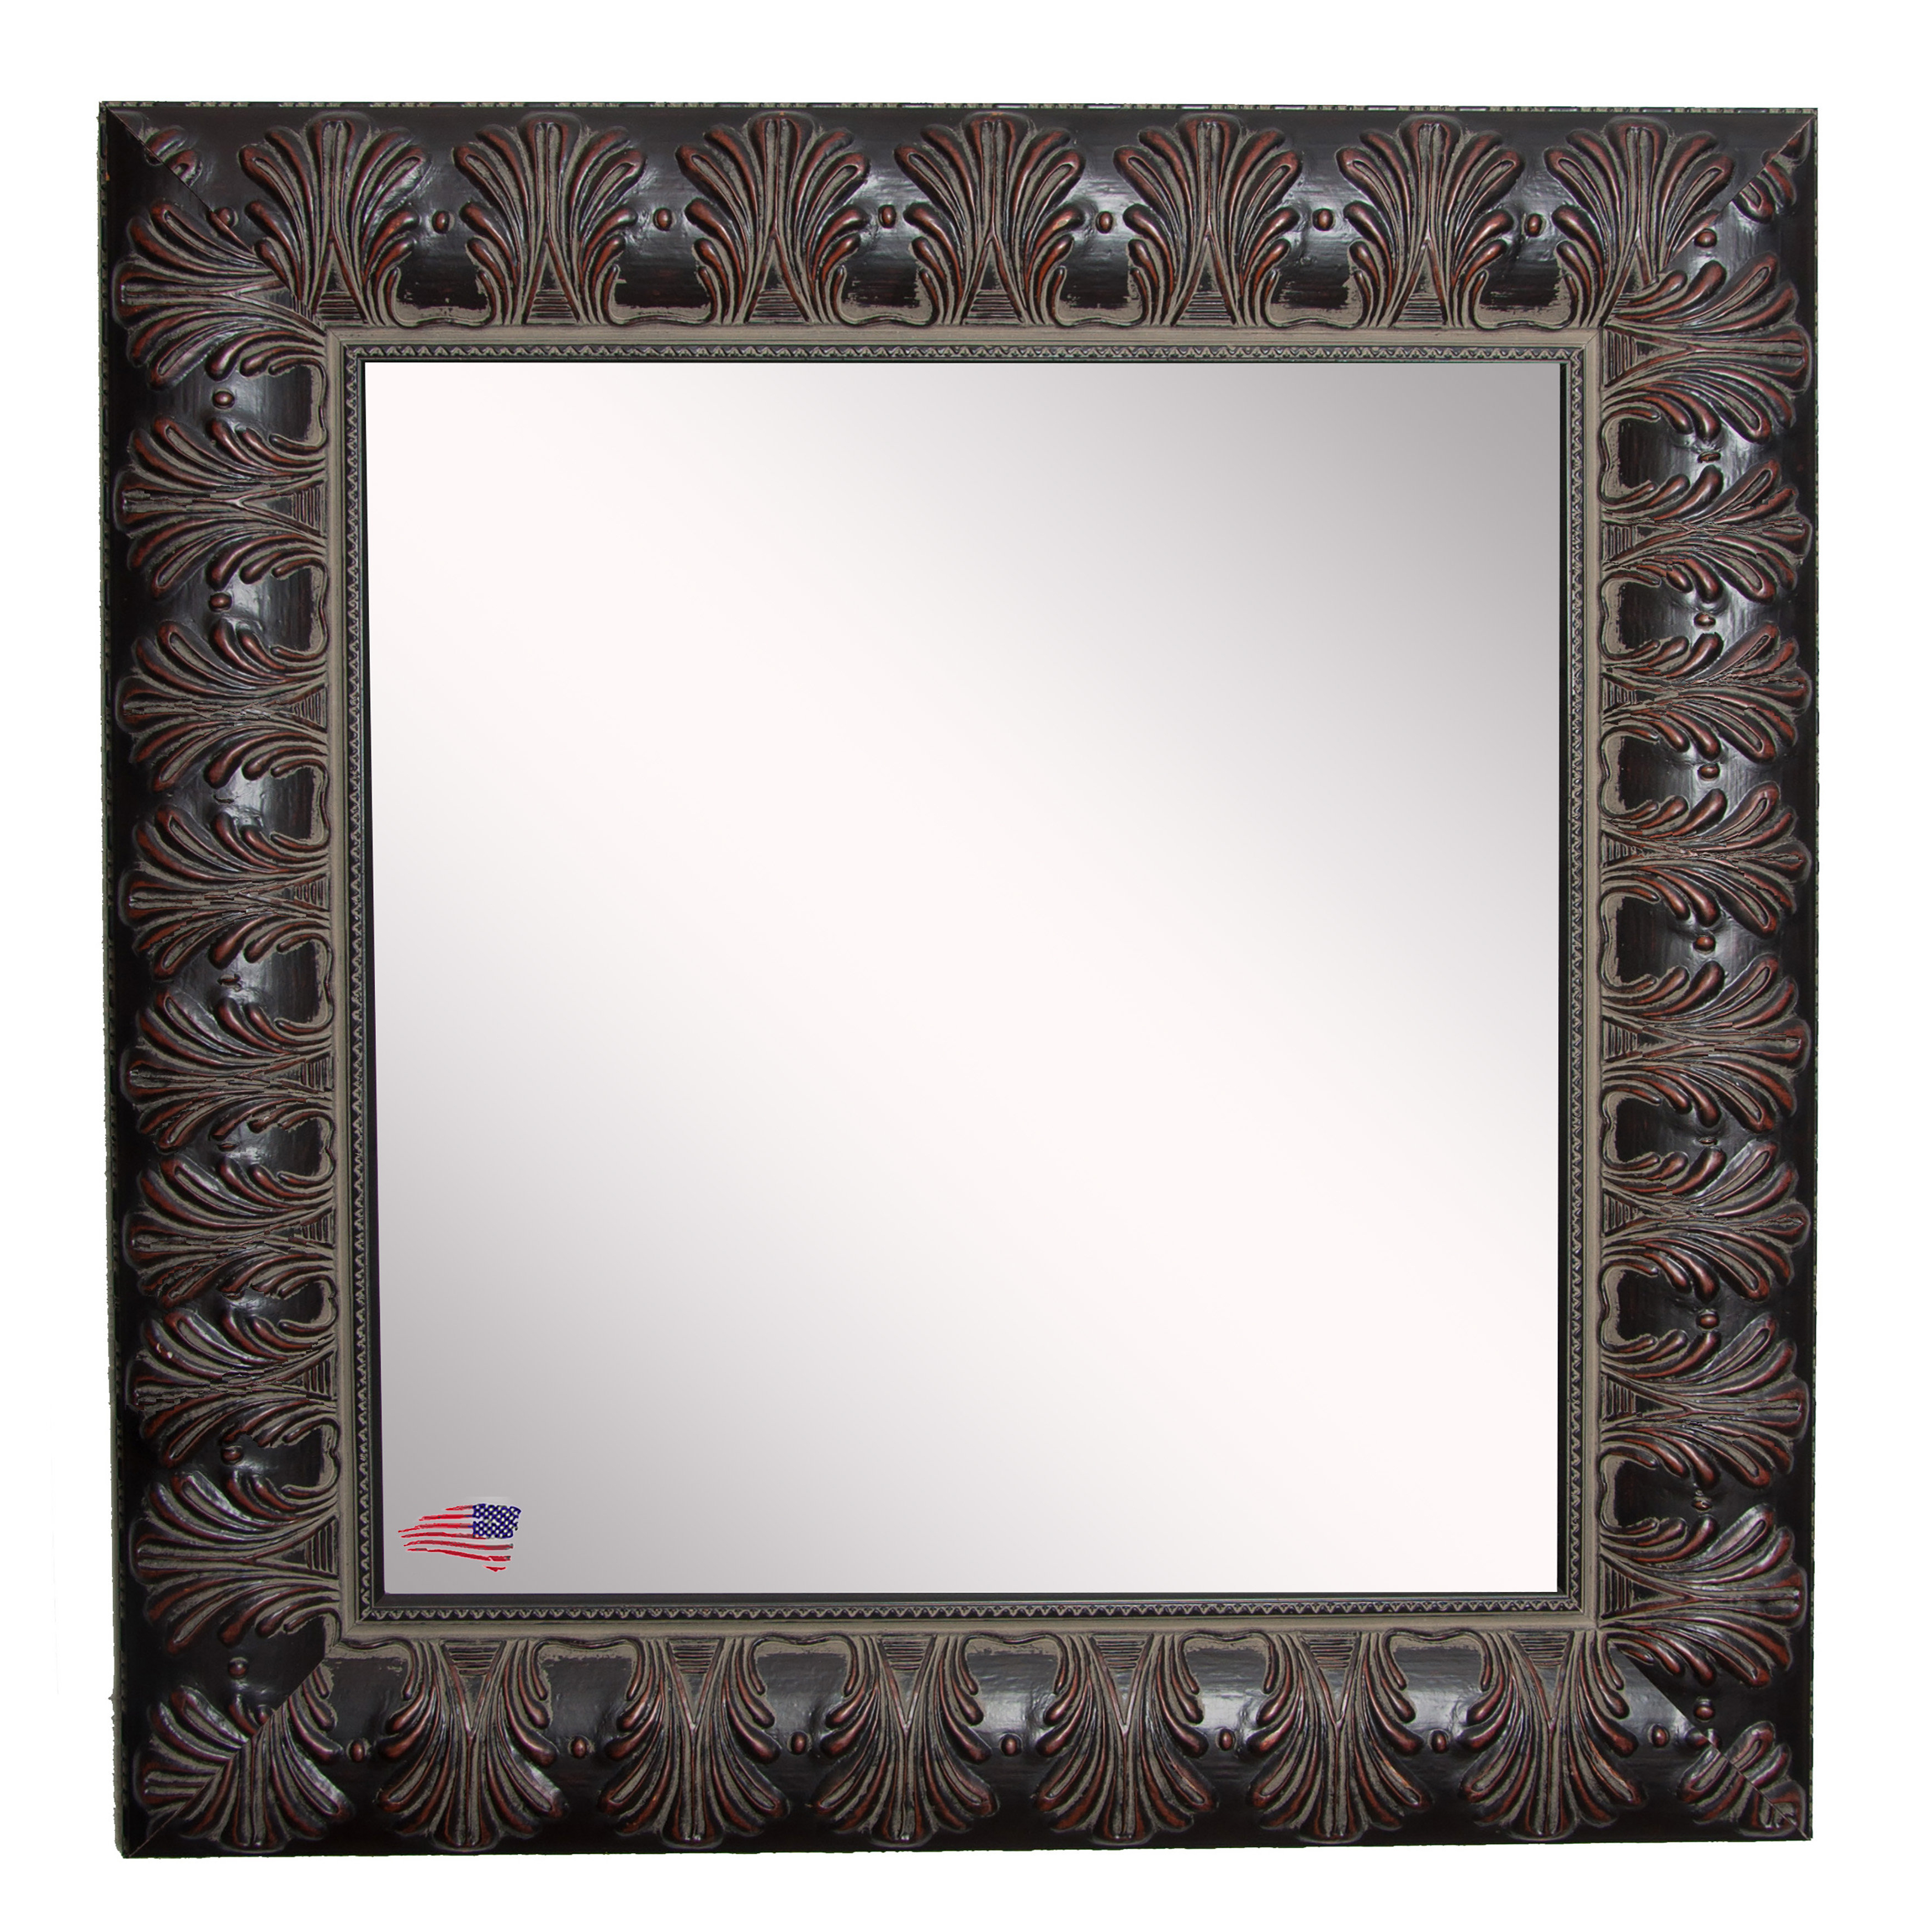 Best And Newest Ulus Accent Mirrors Within Square Feathered Accent Wall Mirror (View 13 of 20)